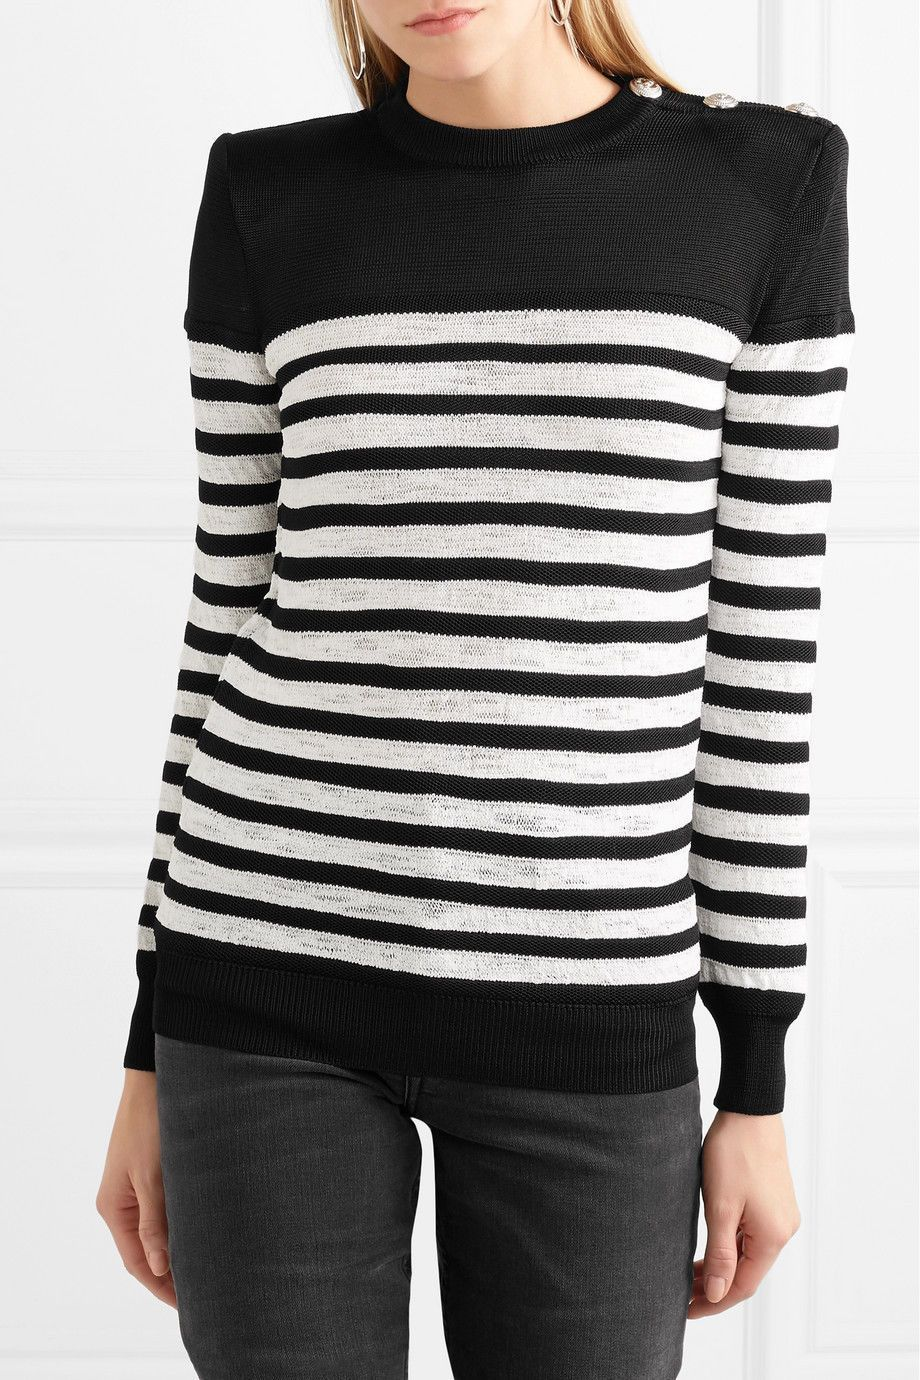 Balmain Button Embellished Striped Open Knit Sweater in 2019 ... a5453bd64